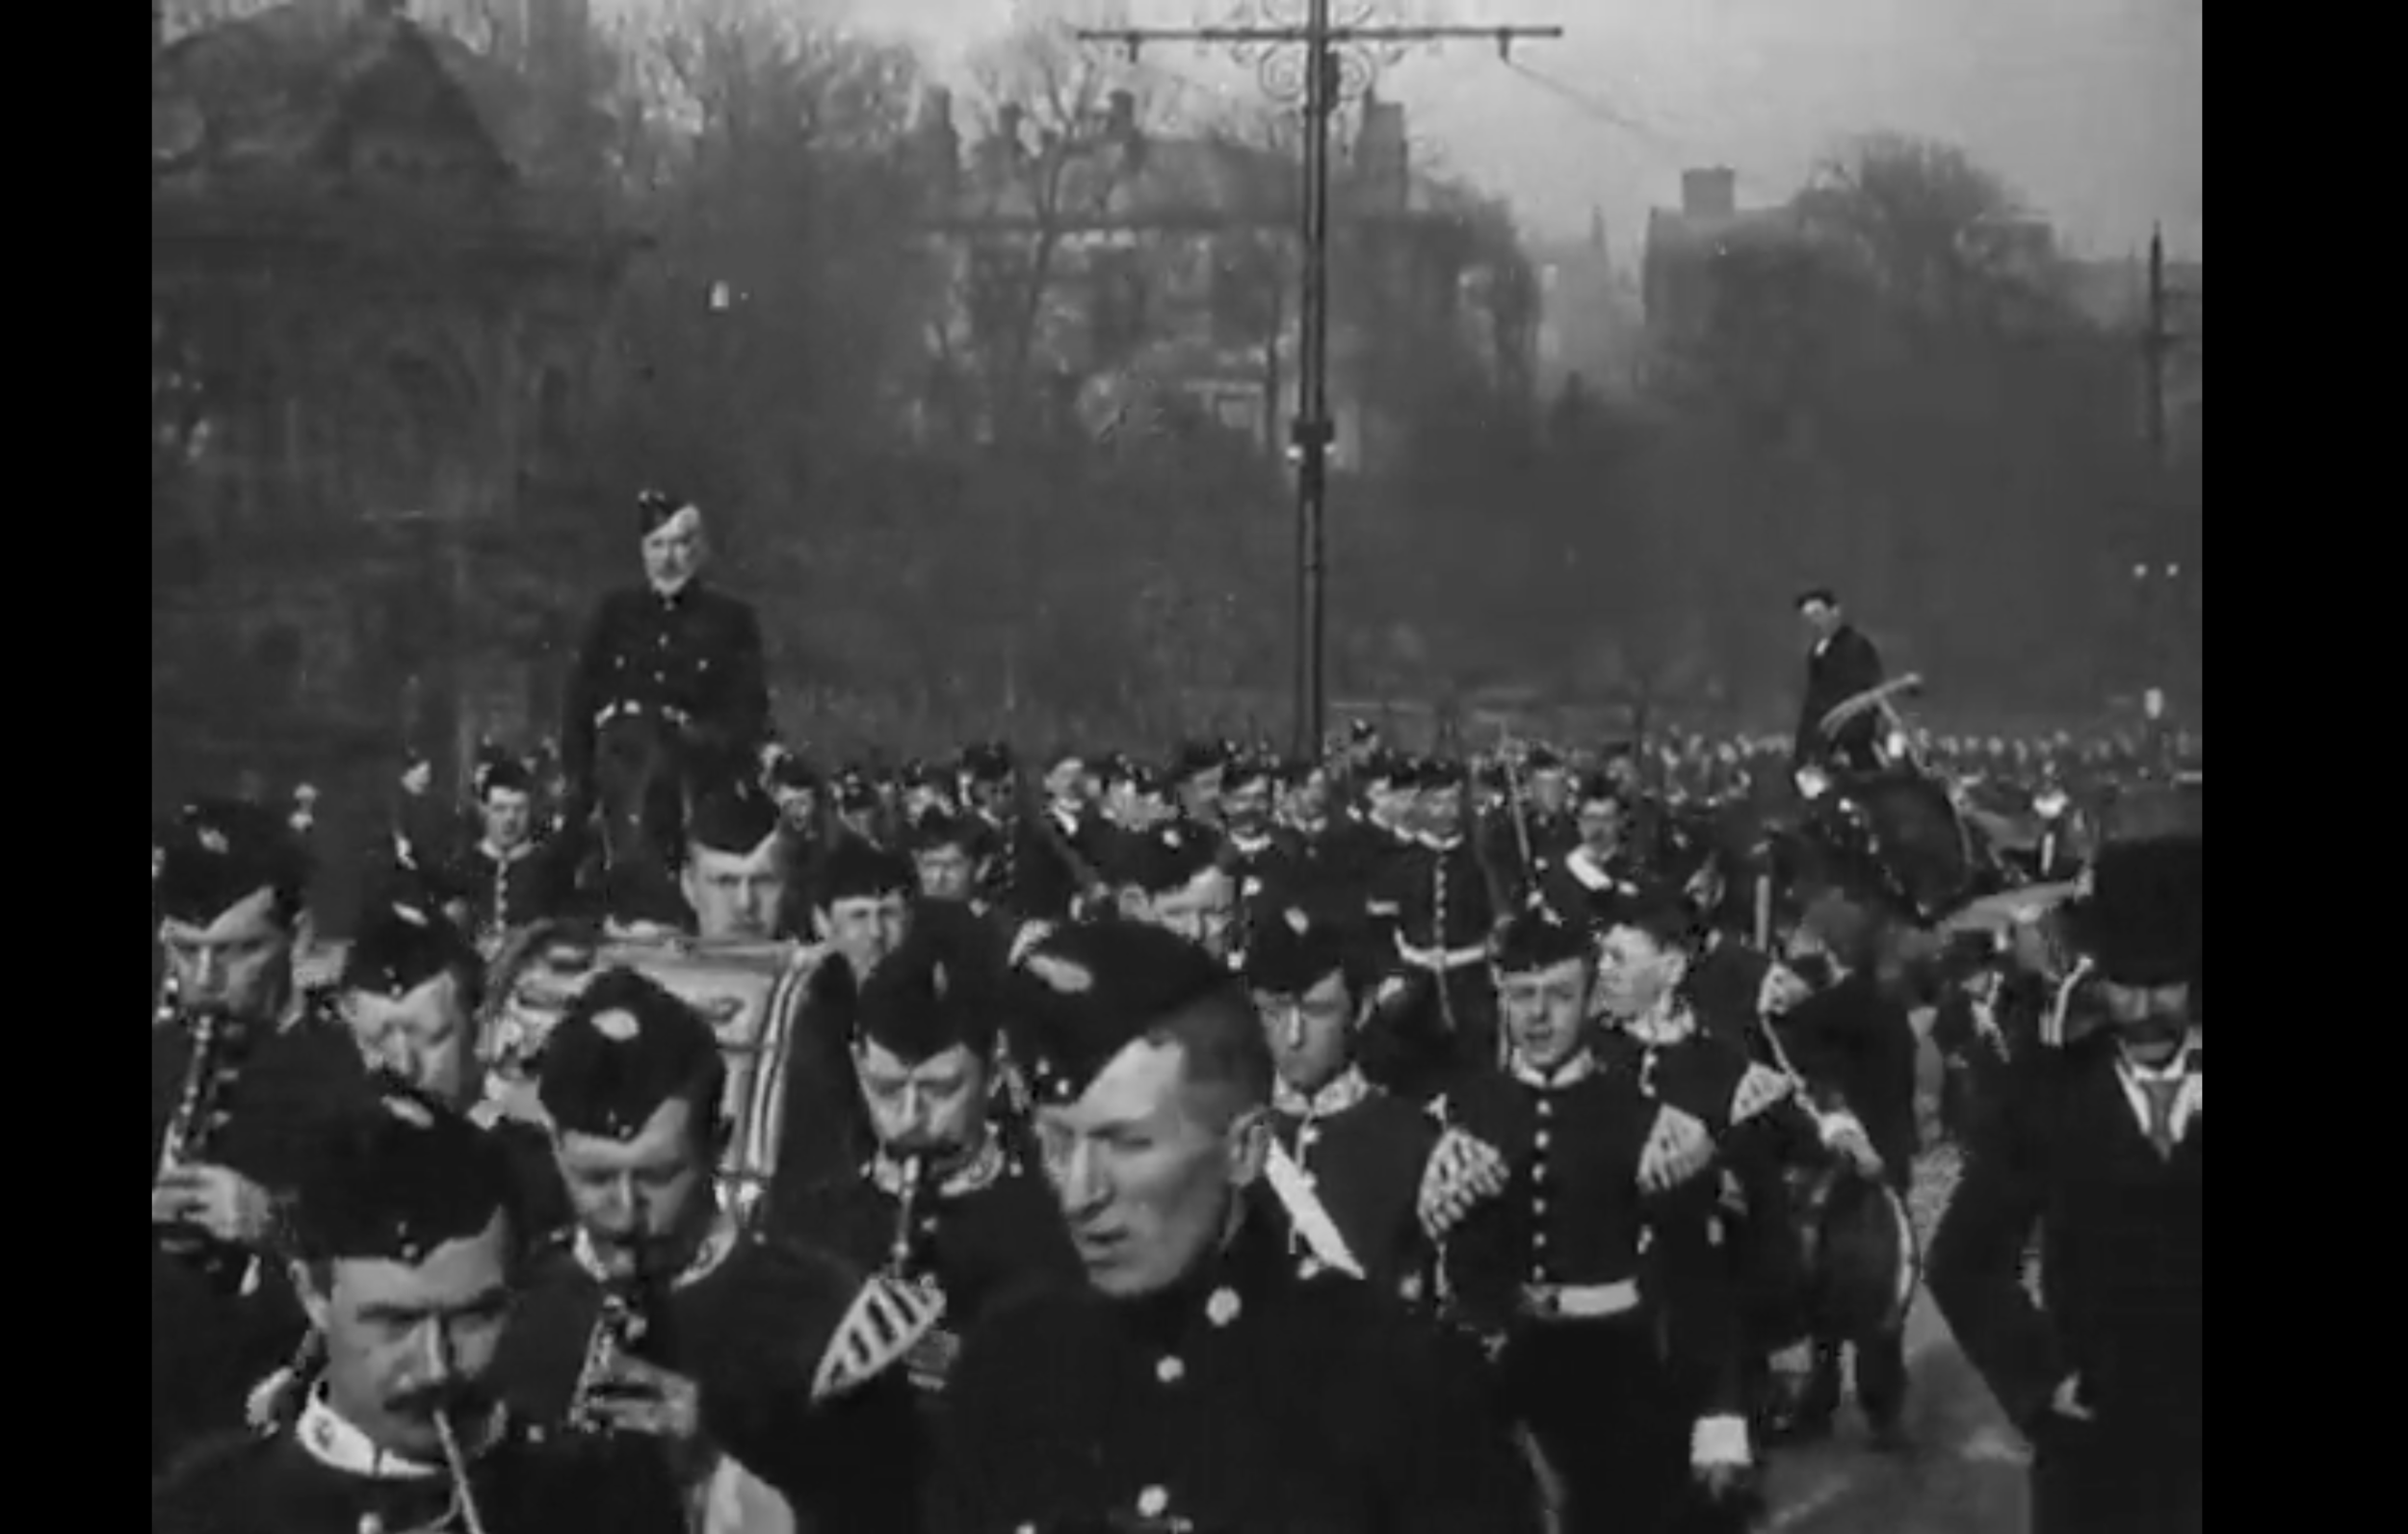 The British Film Institute have footage of the 1st Battalion (Blackburn Volunteers) shot in 1900. (CLICK THE IMAGE TO VIEW)